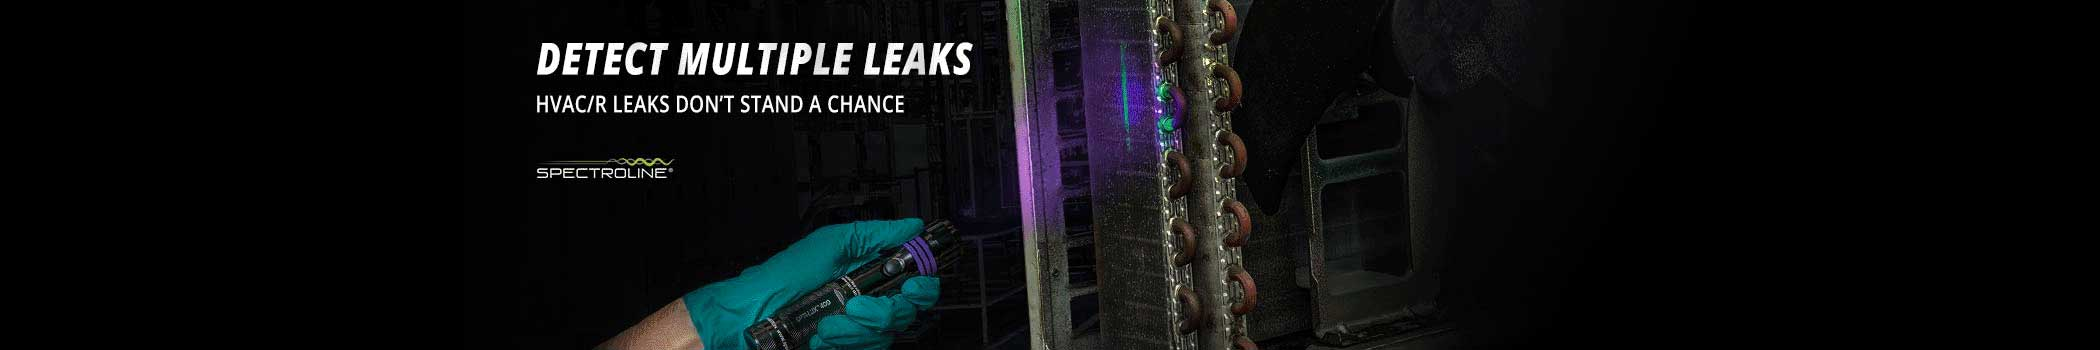 Spectroline HVAC/R Fluorescent Leak Detection